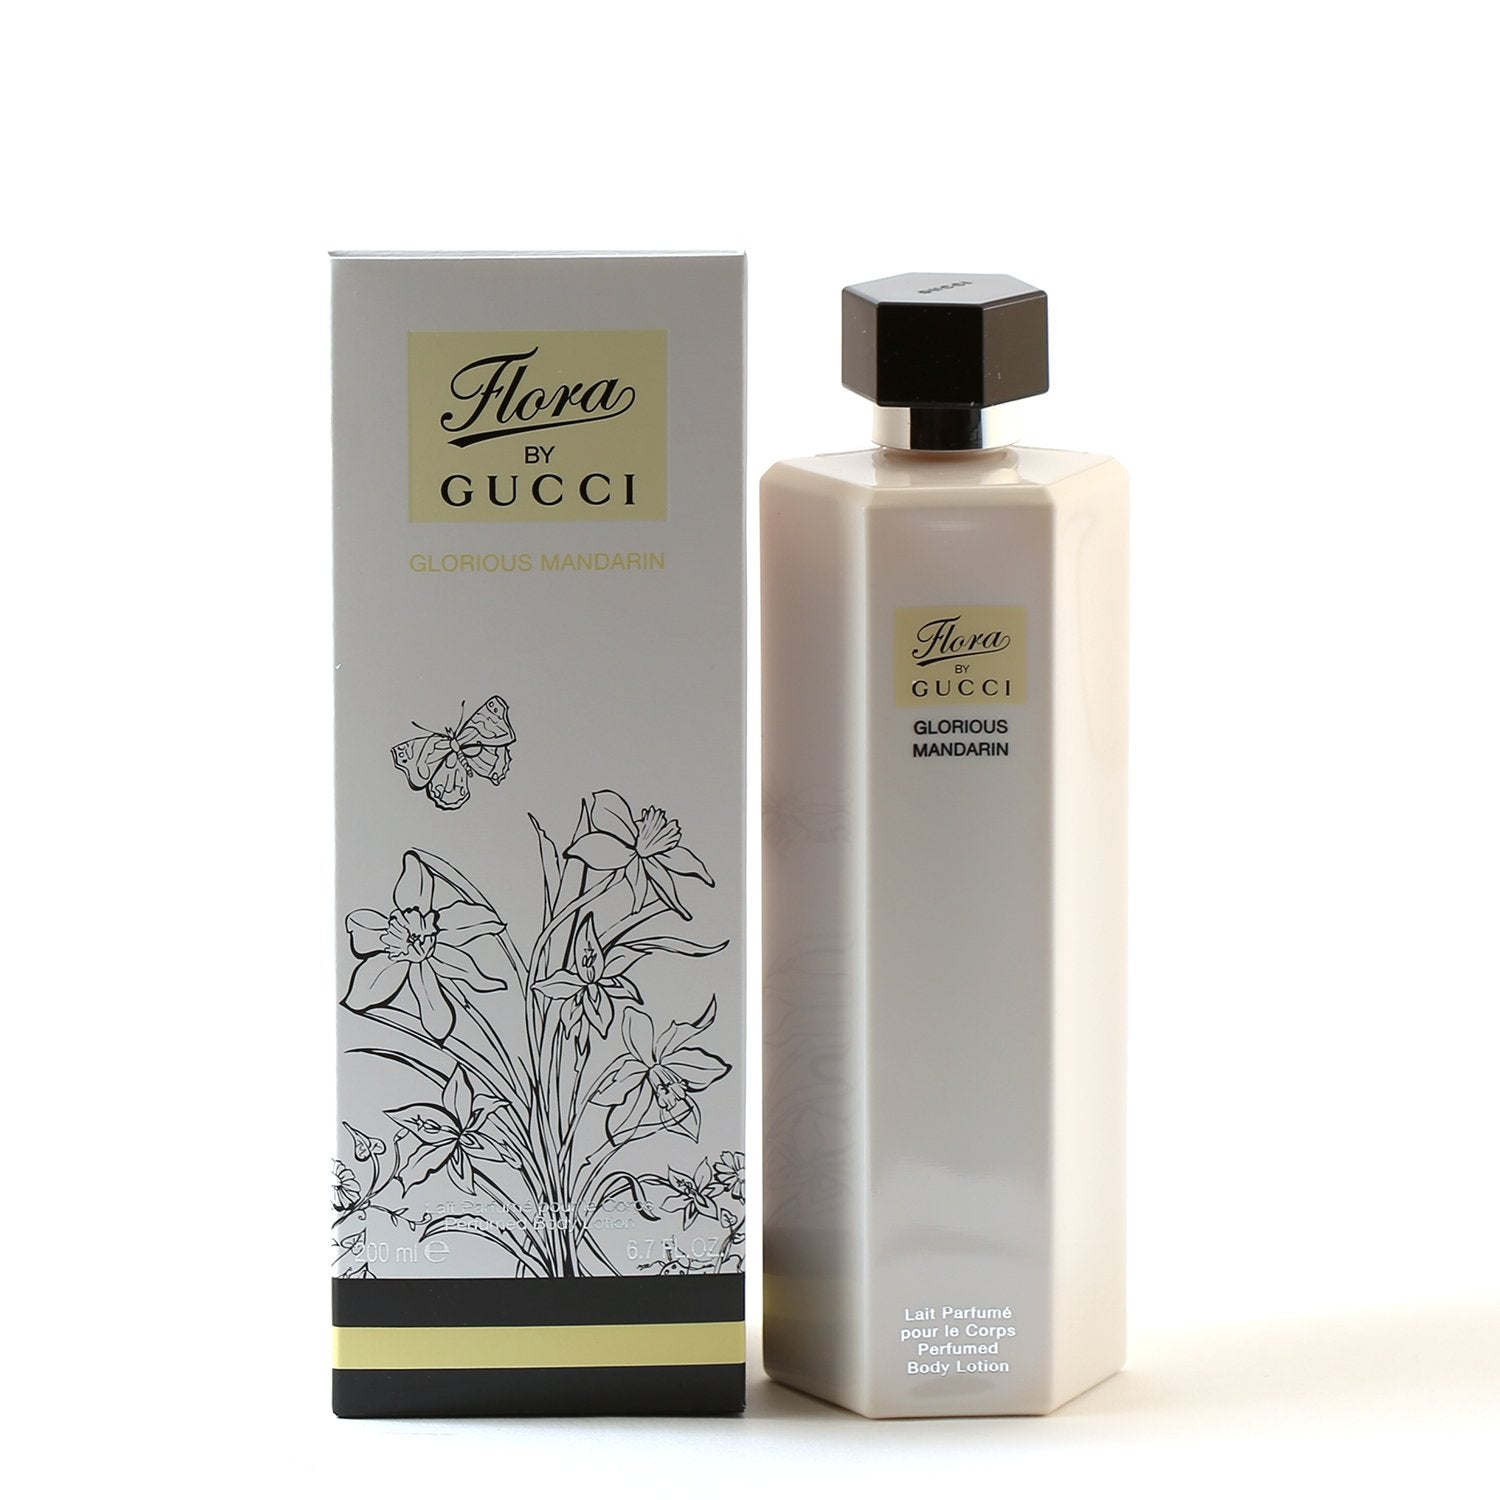 Perfume - GUCCI FLORA MANDARIN FOR WOMEN - BODY LOTION, 6.7 OZ